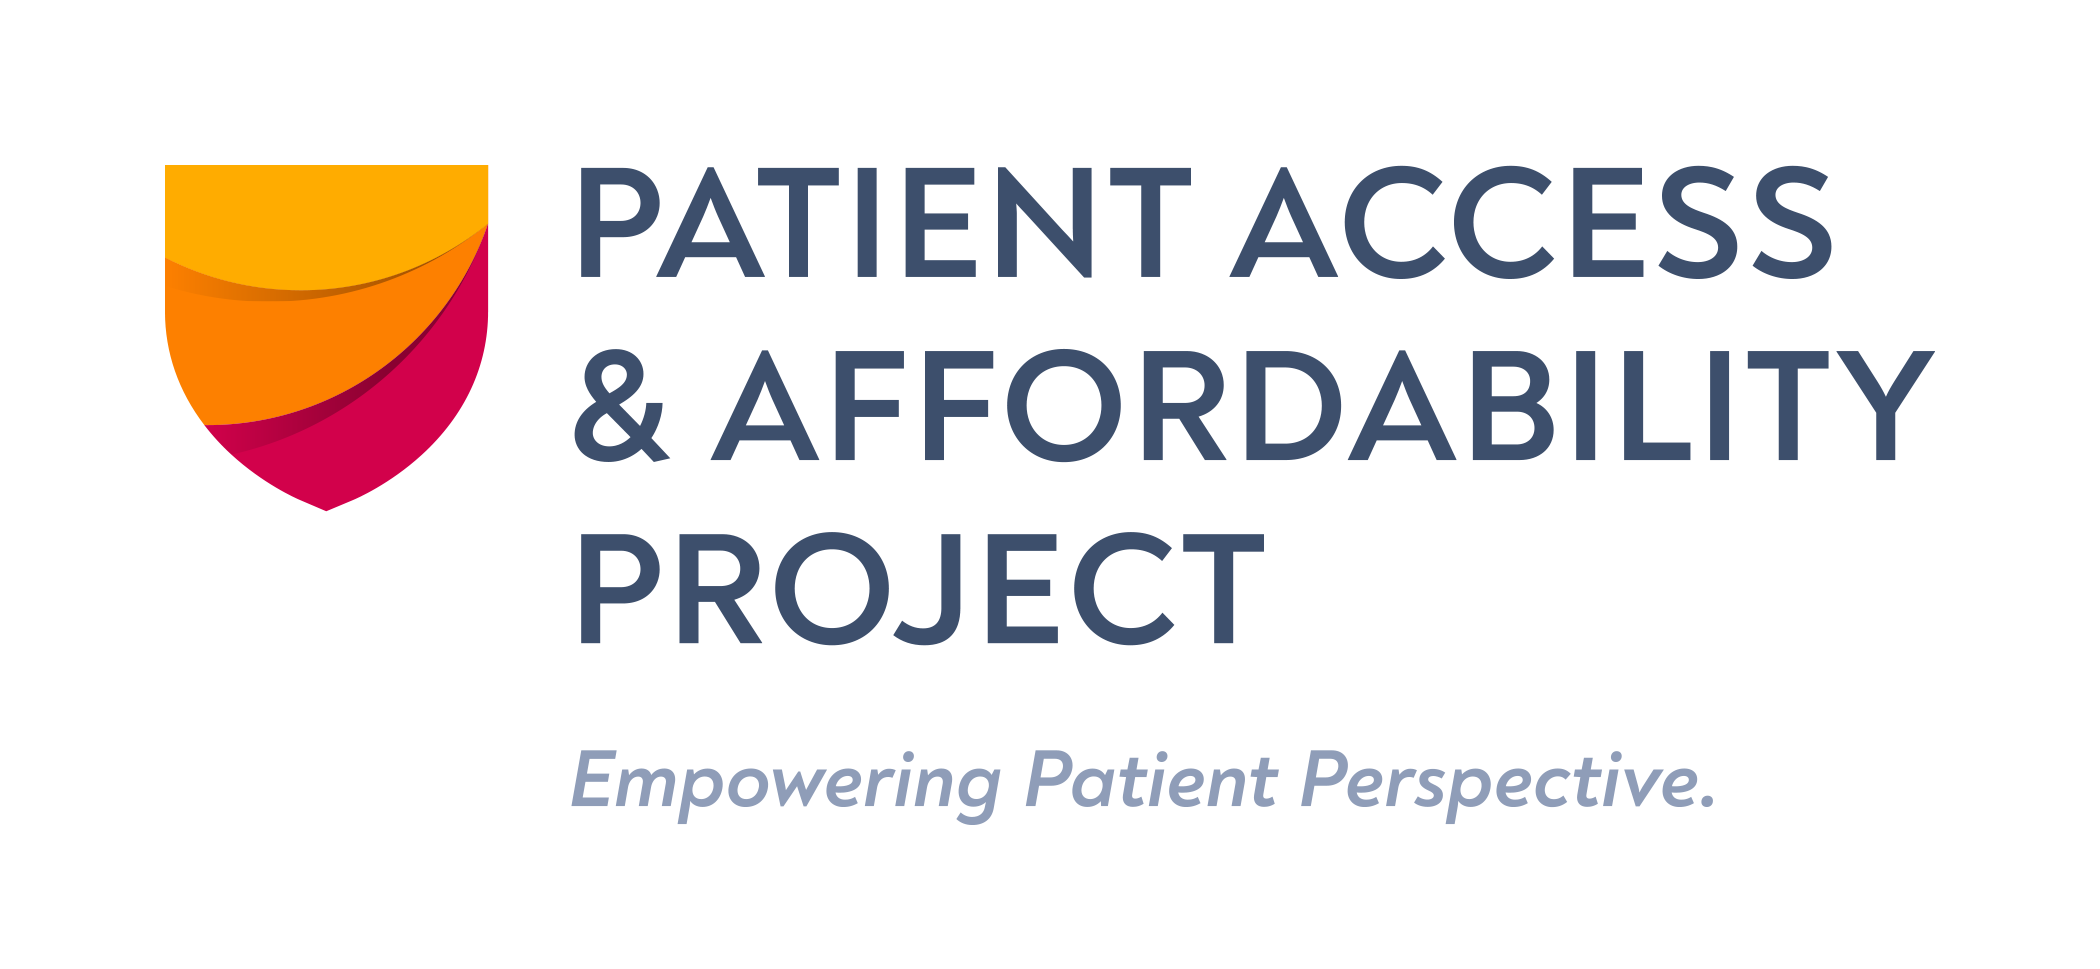 Patient Access & Affordability